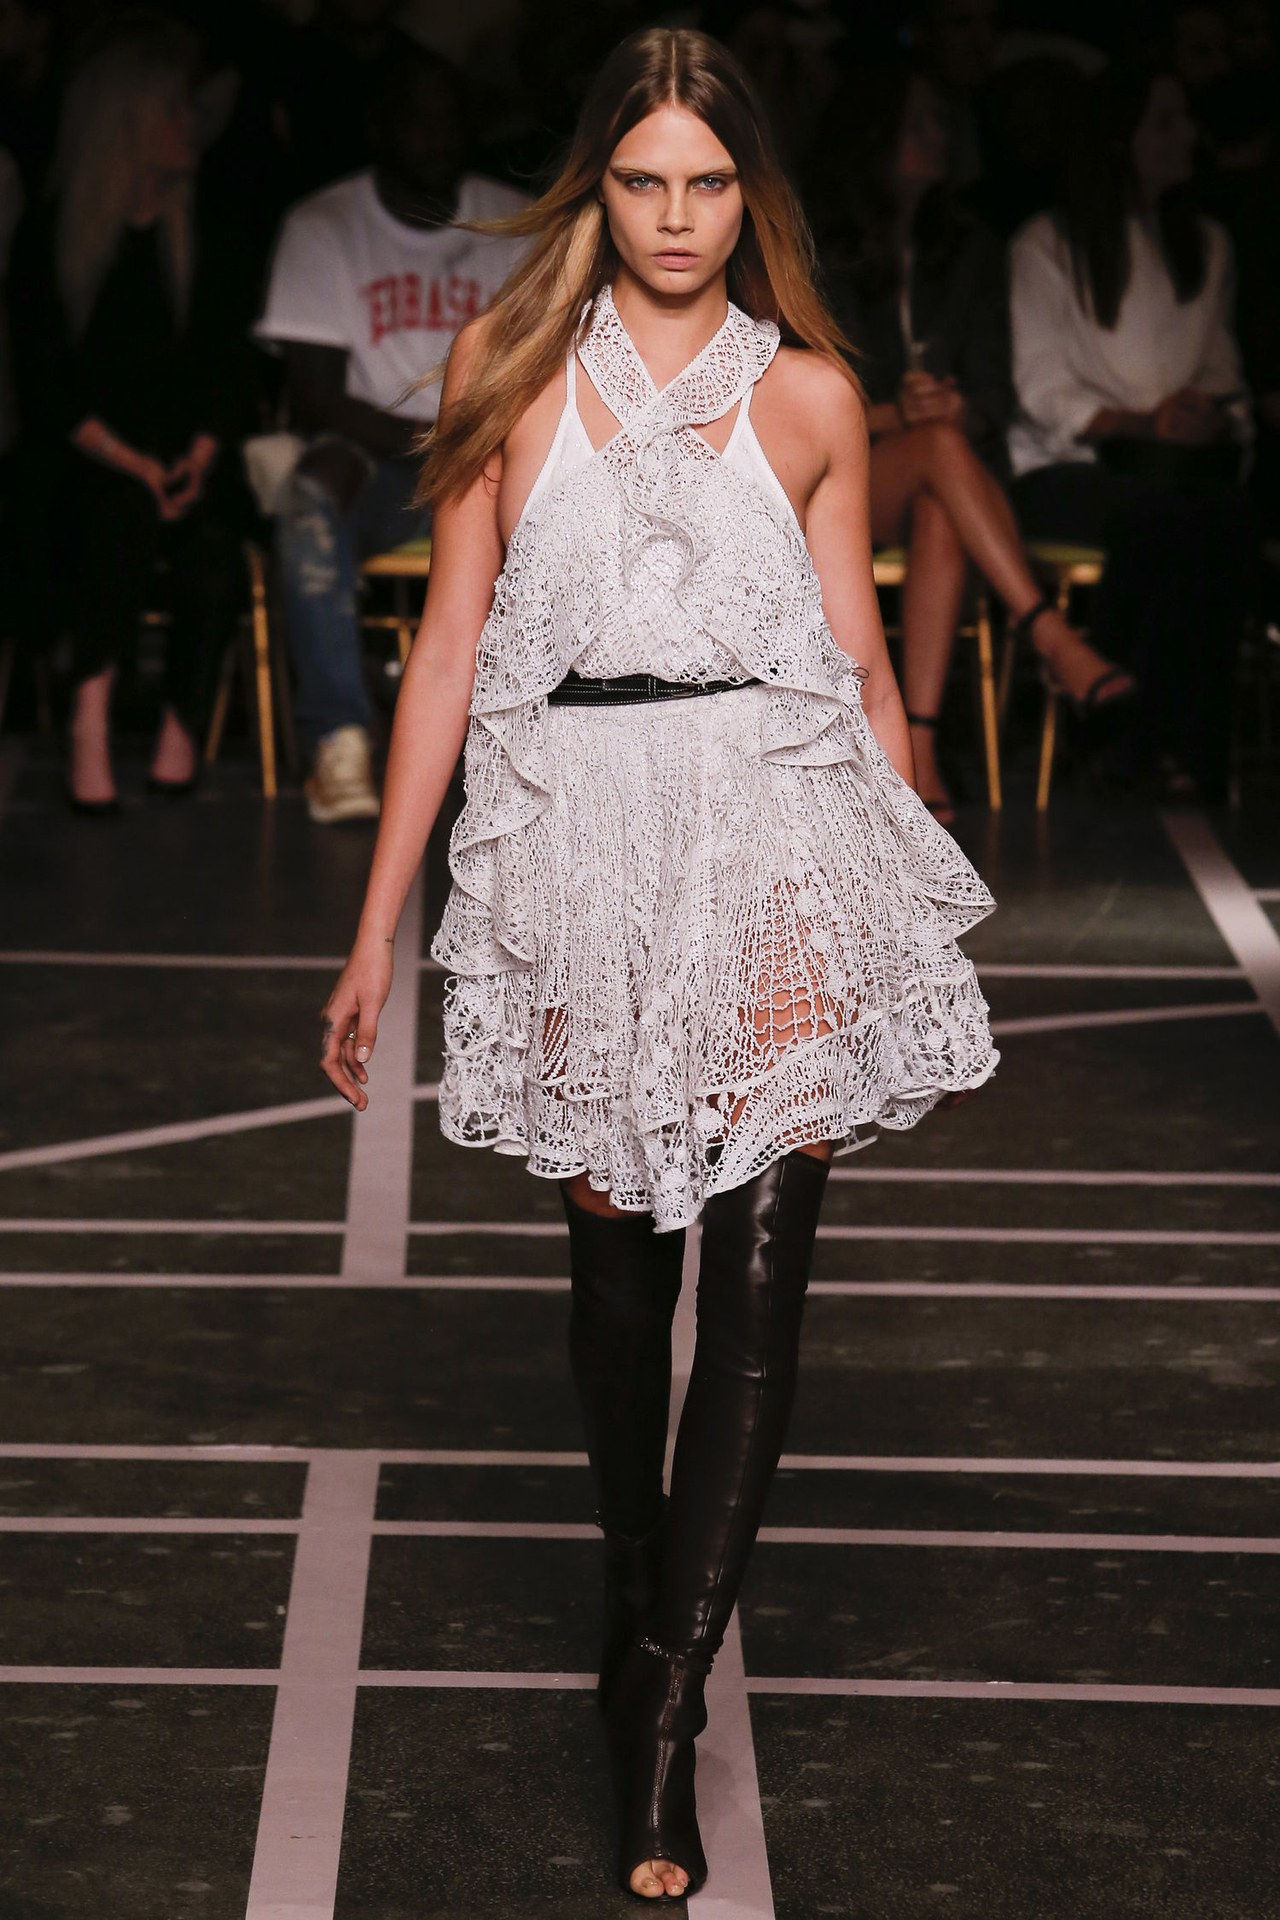 गिवेंची spring 2015 lace babydoll dress cara delevingne